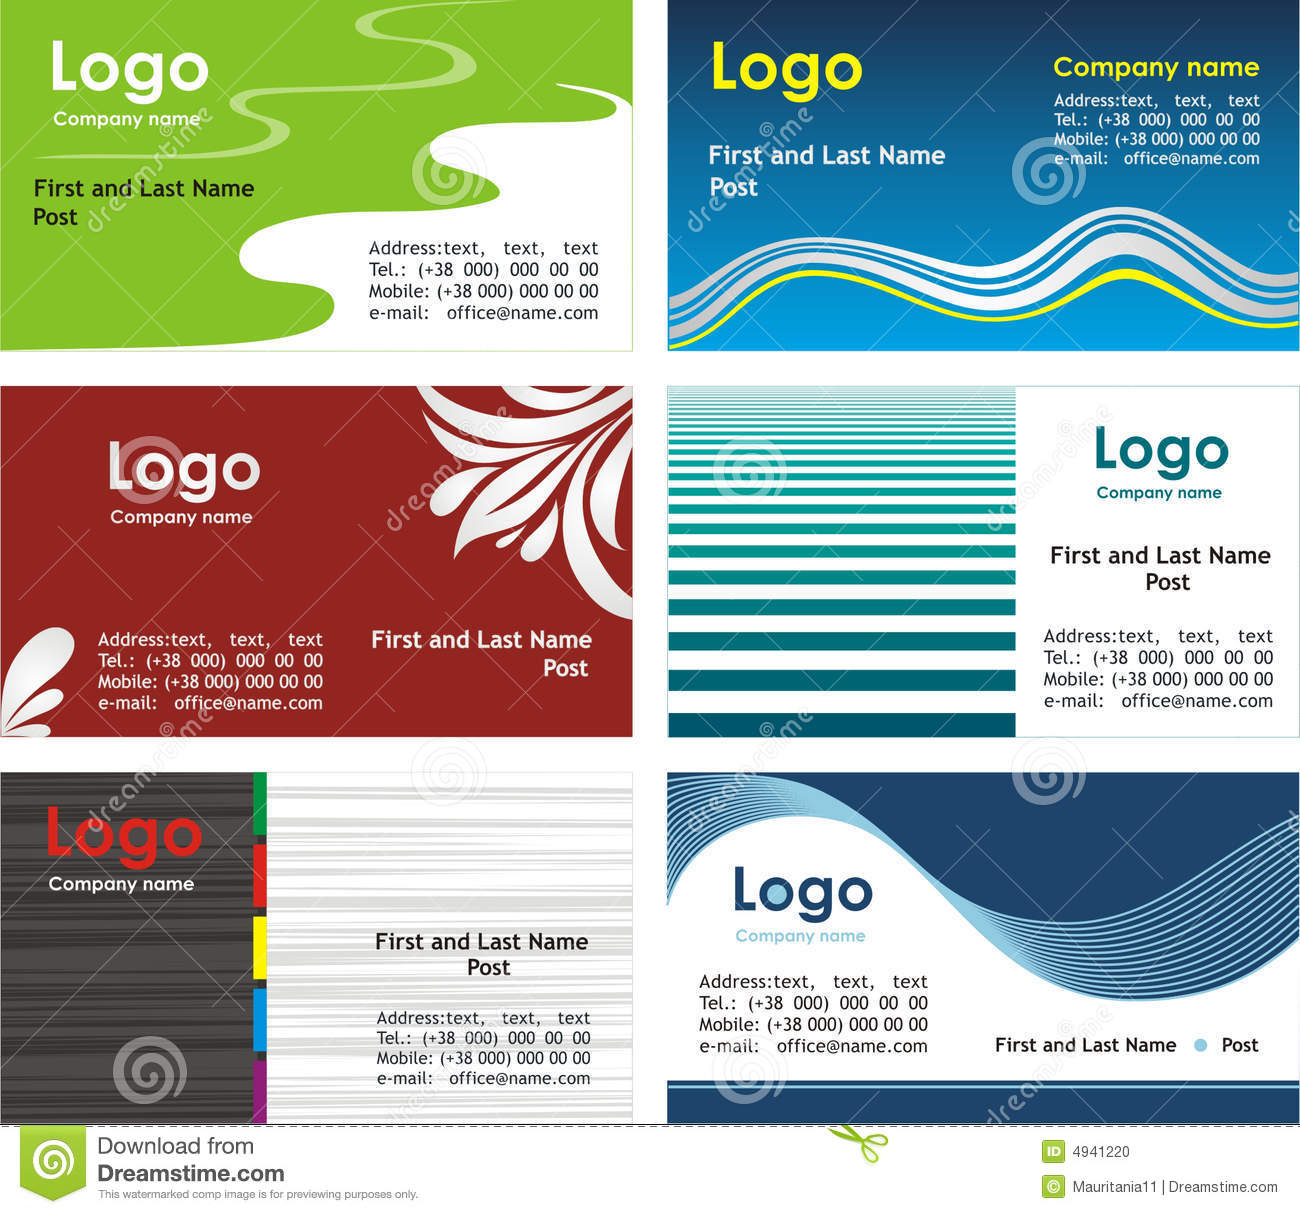 downloadable business card templates for word - free word business card templates business card sample